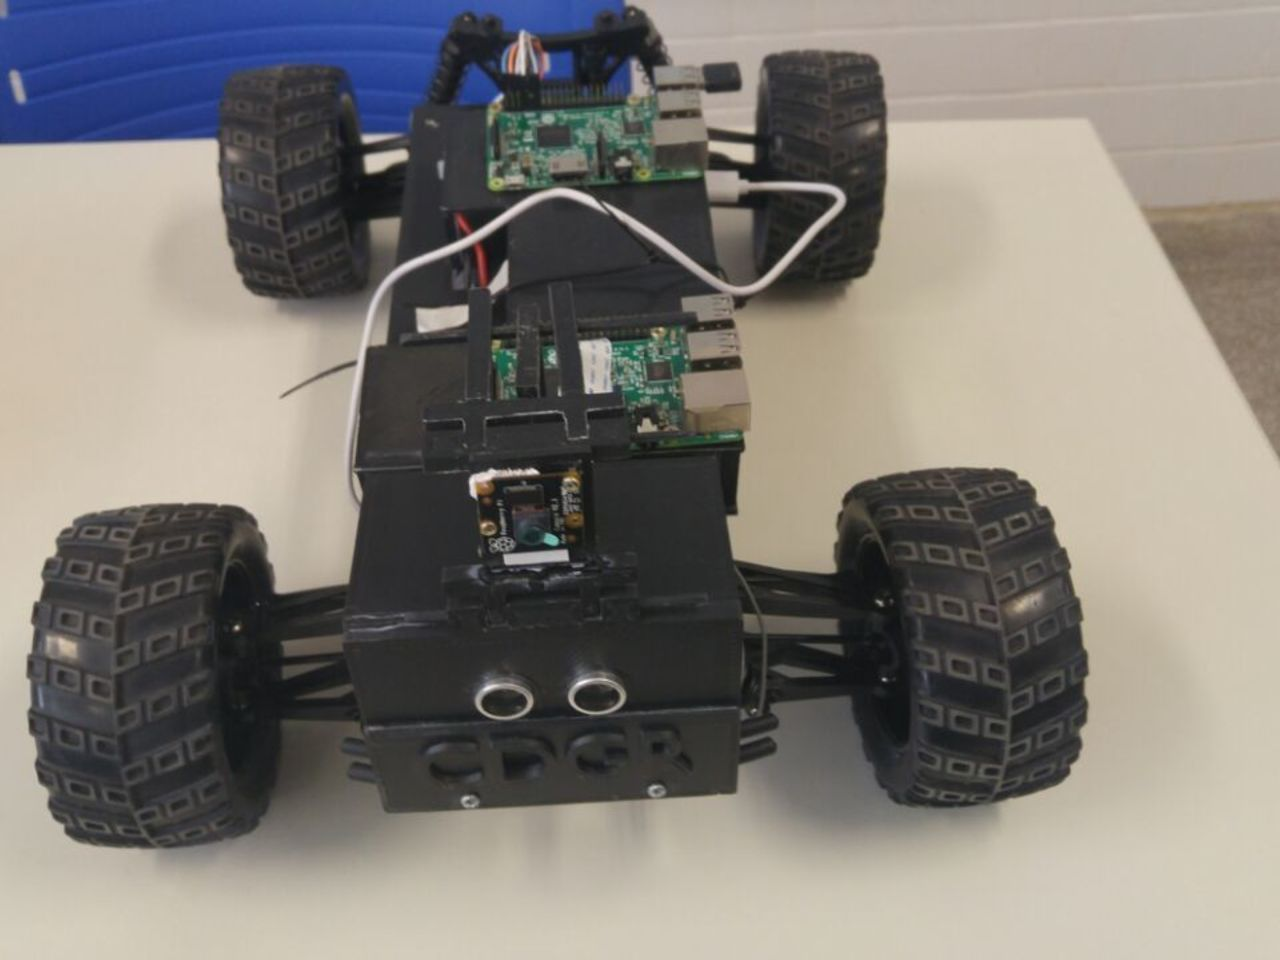 Driverless Car Prototype Based on Deep Learning